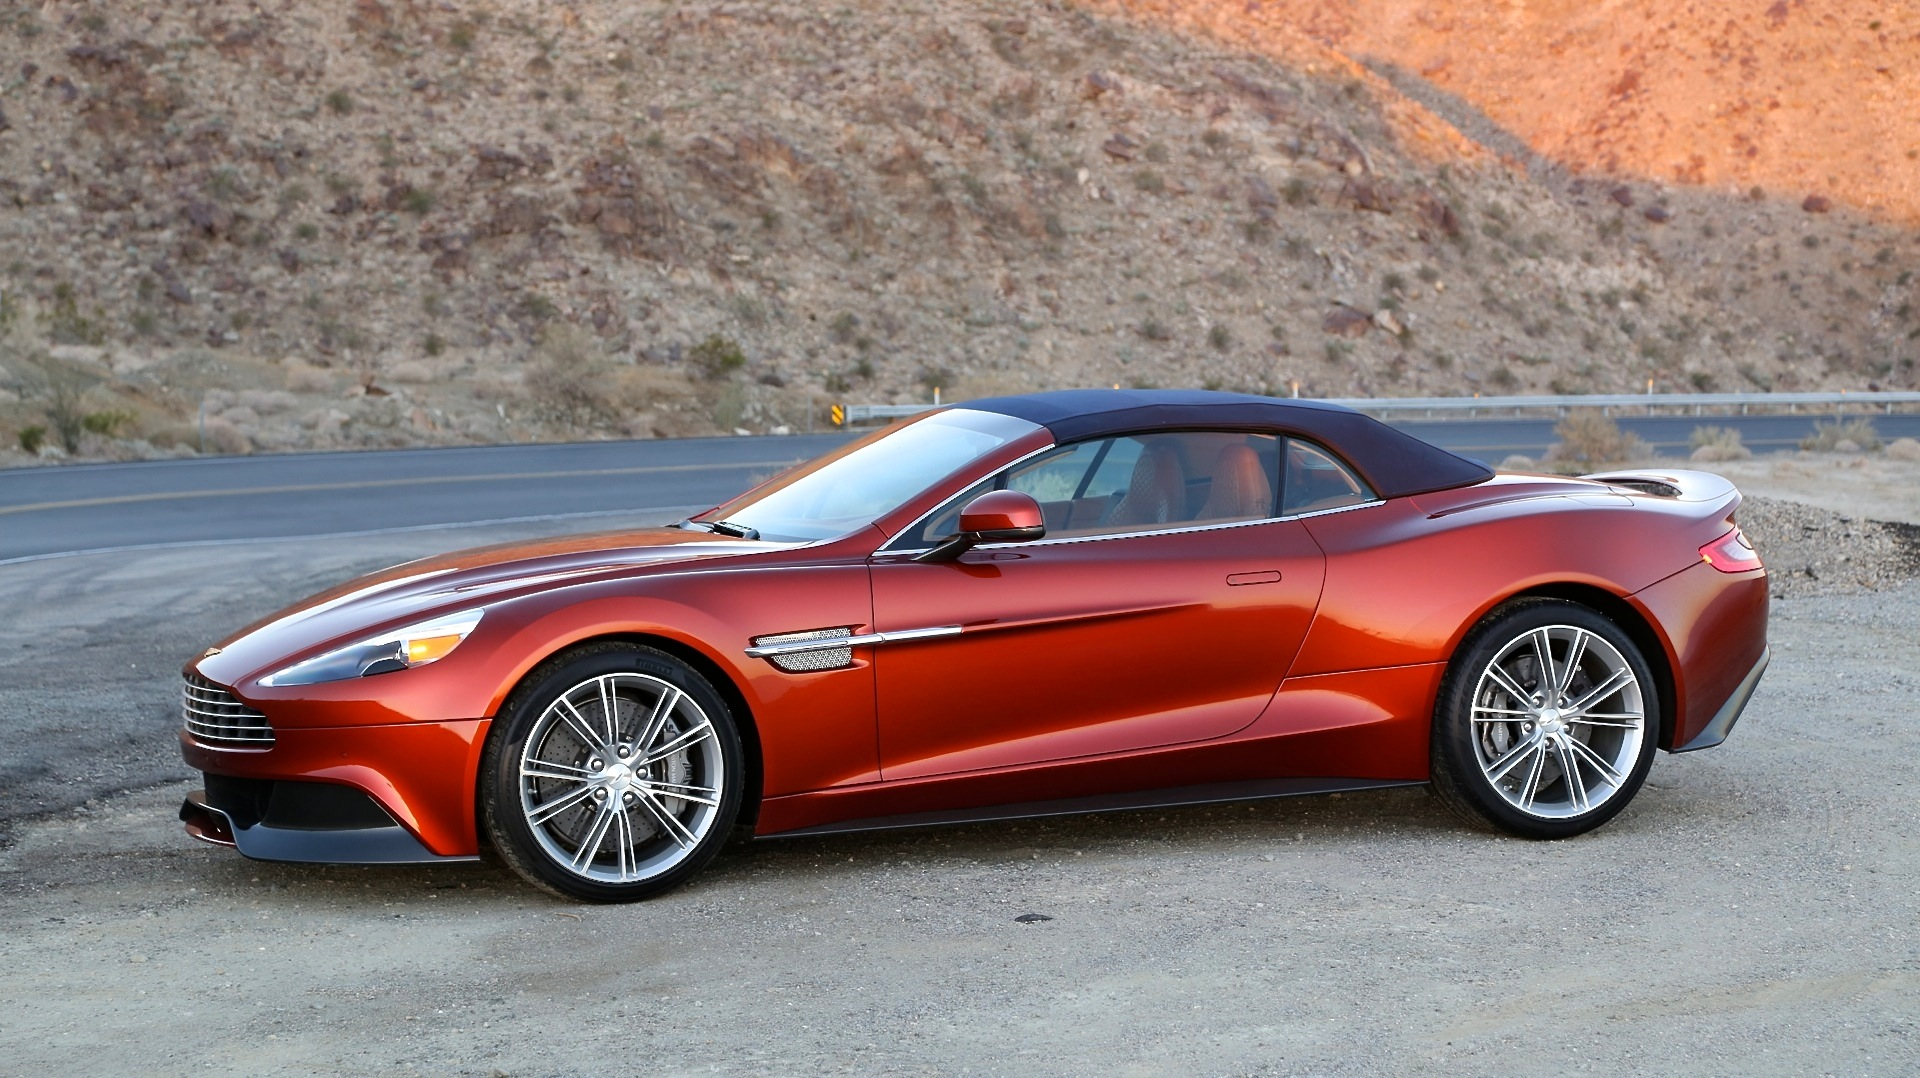 Nissan Fort Worth Used Cars 2014 Aston Martin Vanquish Review, Ratings, Specs, Prices ...